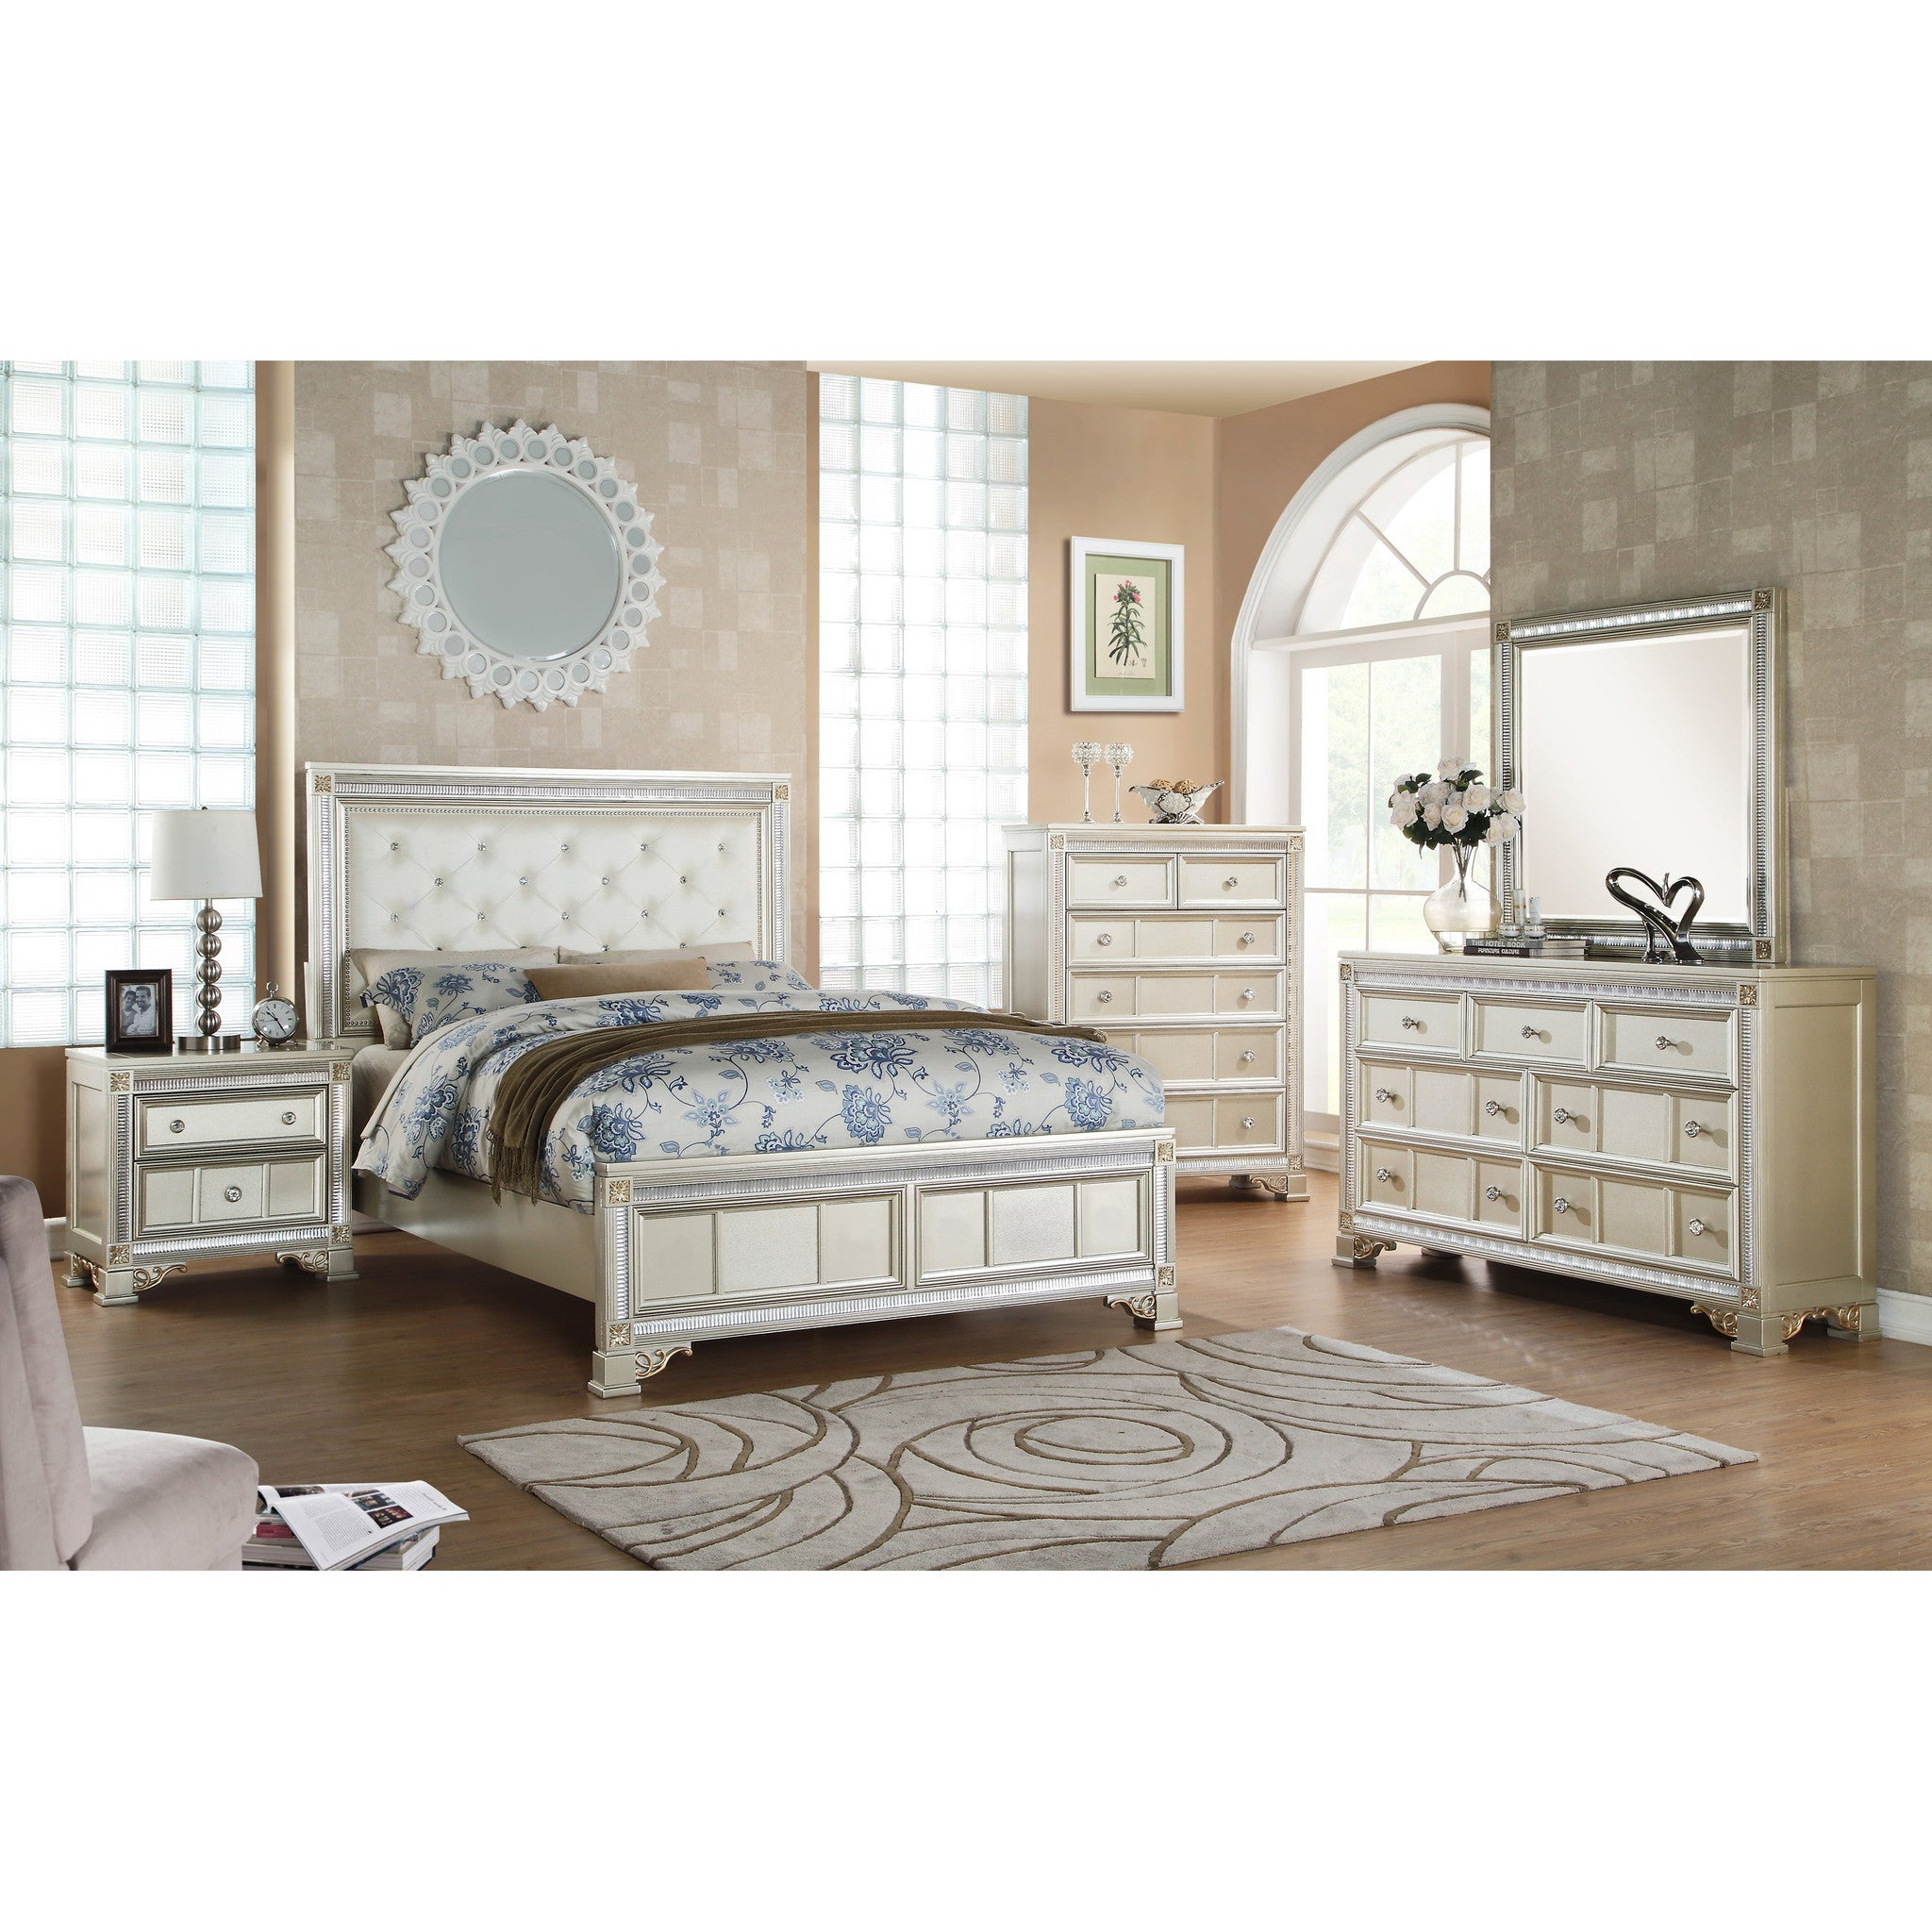 product room set queen dimora bedroom packages upholstered change media piece package image click black dresser bed with to